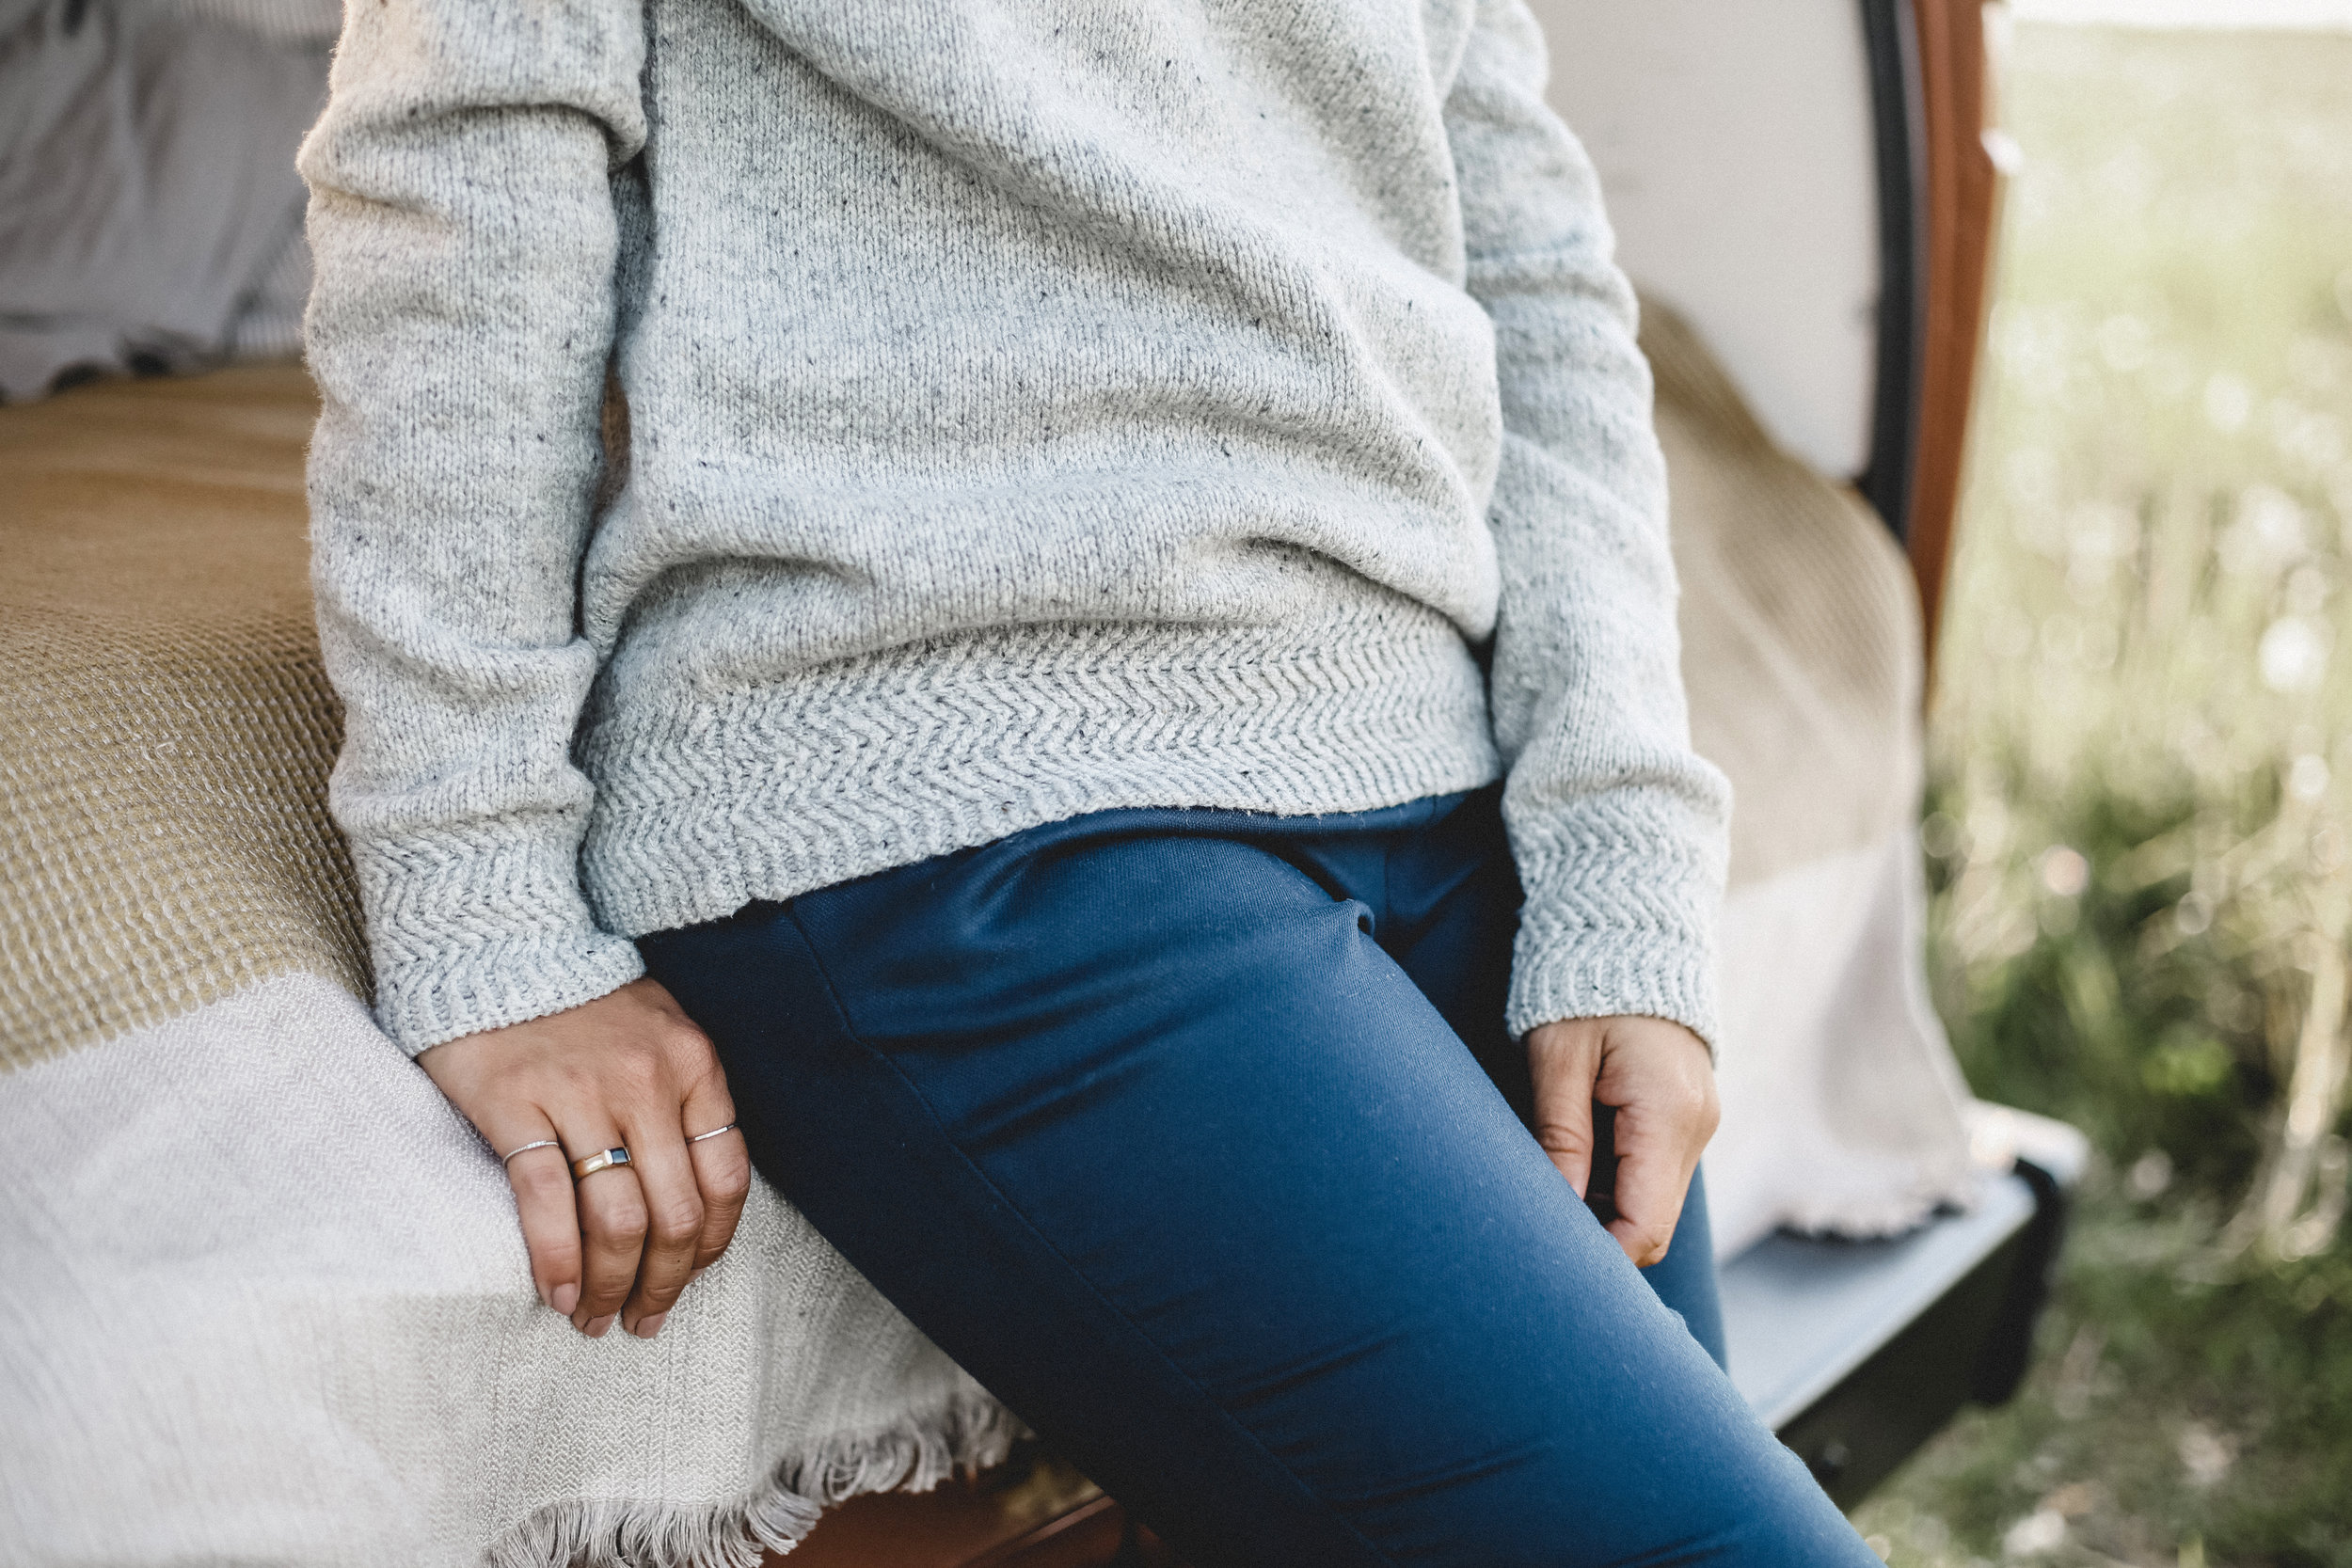 Bornholm Sweater by Verena Cohrs for TRAVEL